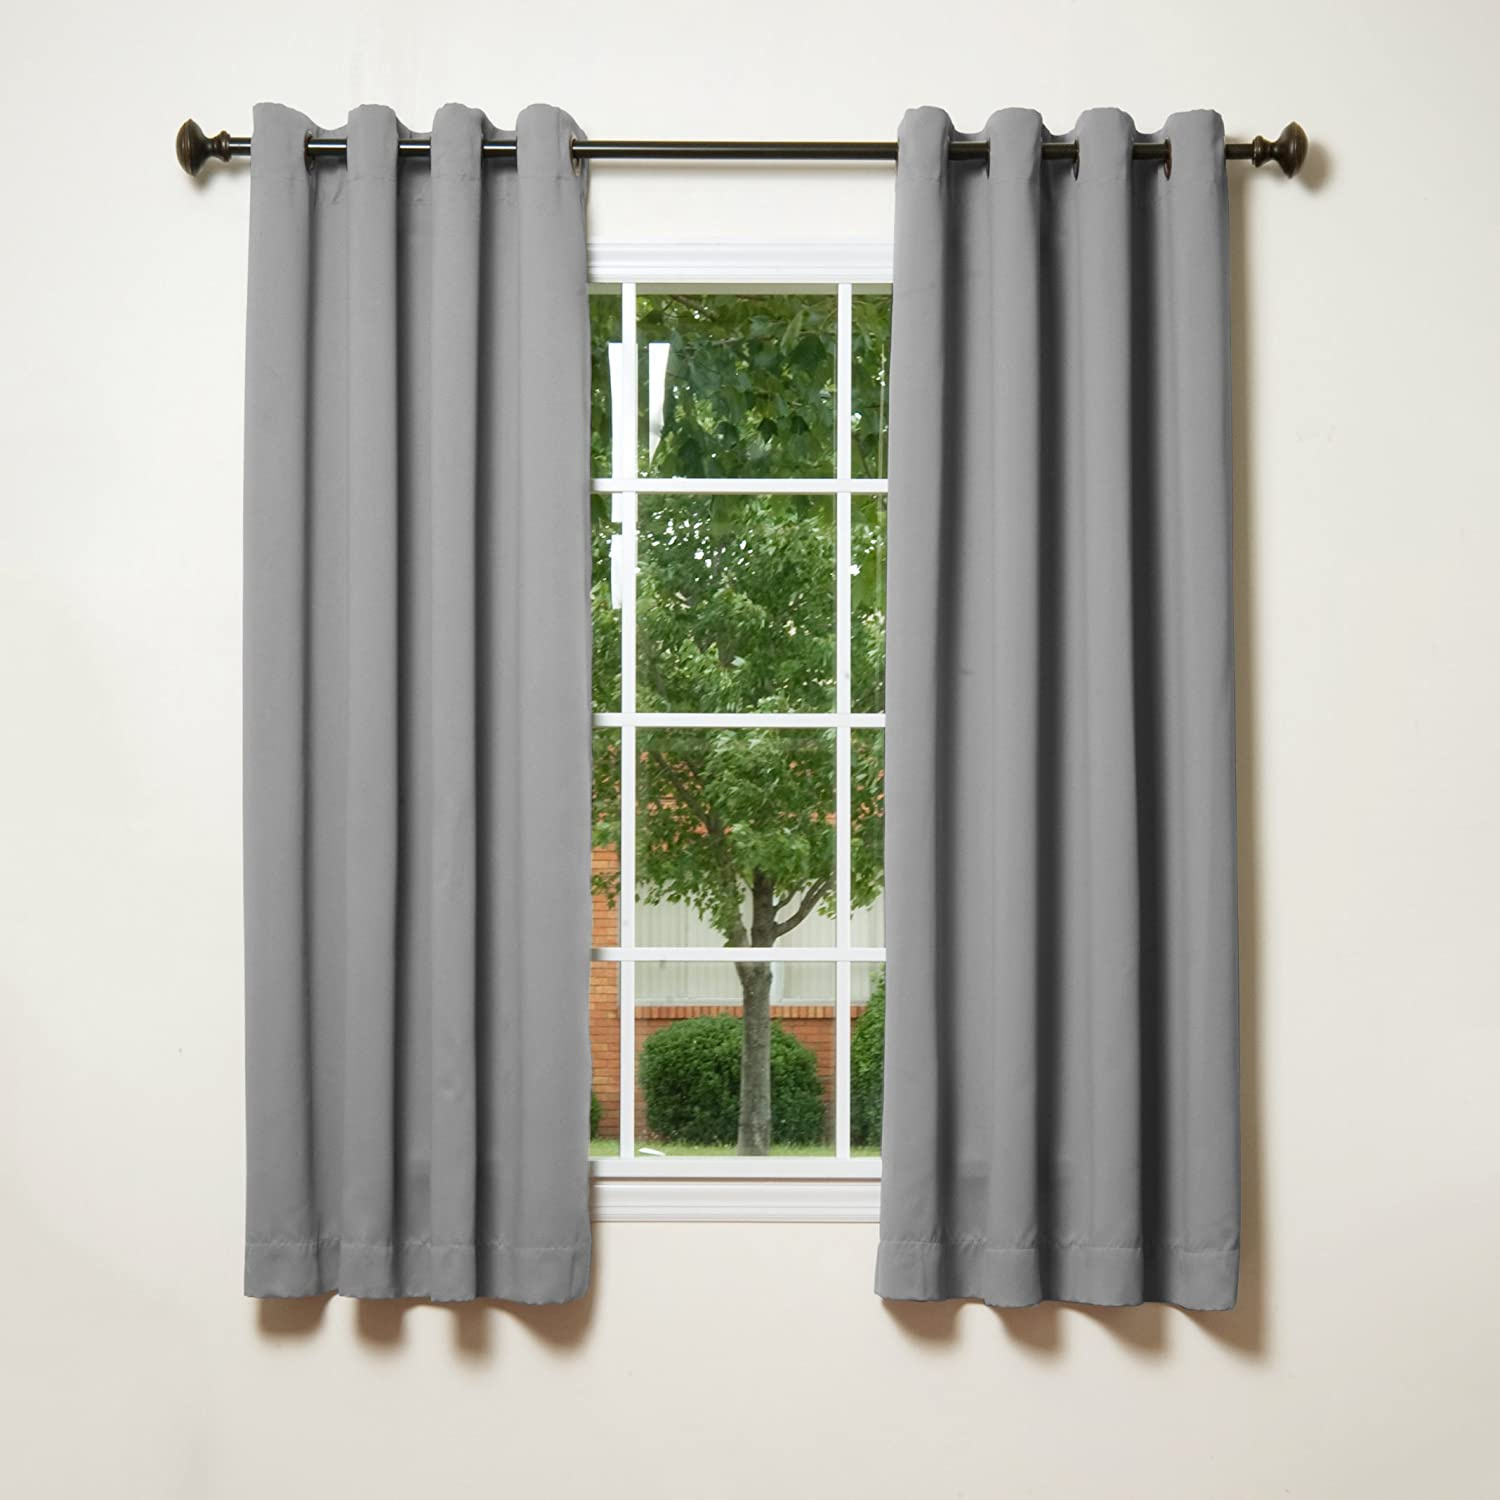 Thermal curtains grey - Amazon Com Best Home Fashion Thermal Insulated Blackout Curtains Antique Bronze Grommet Top Grey 52 W X 63 L Set Of 2 Panels Home Kitchen